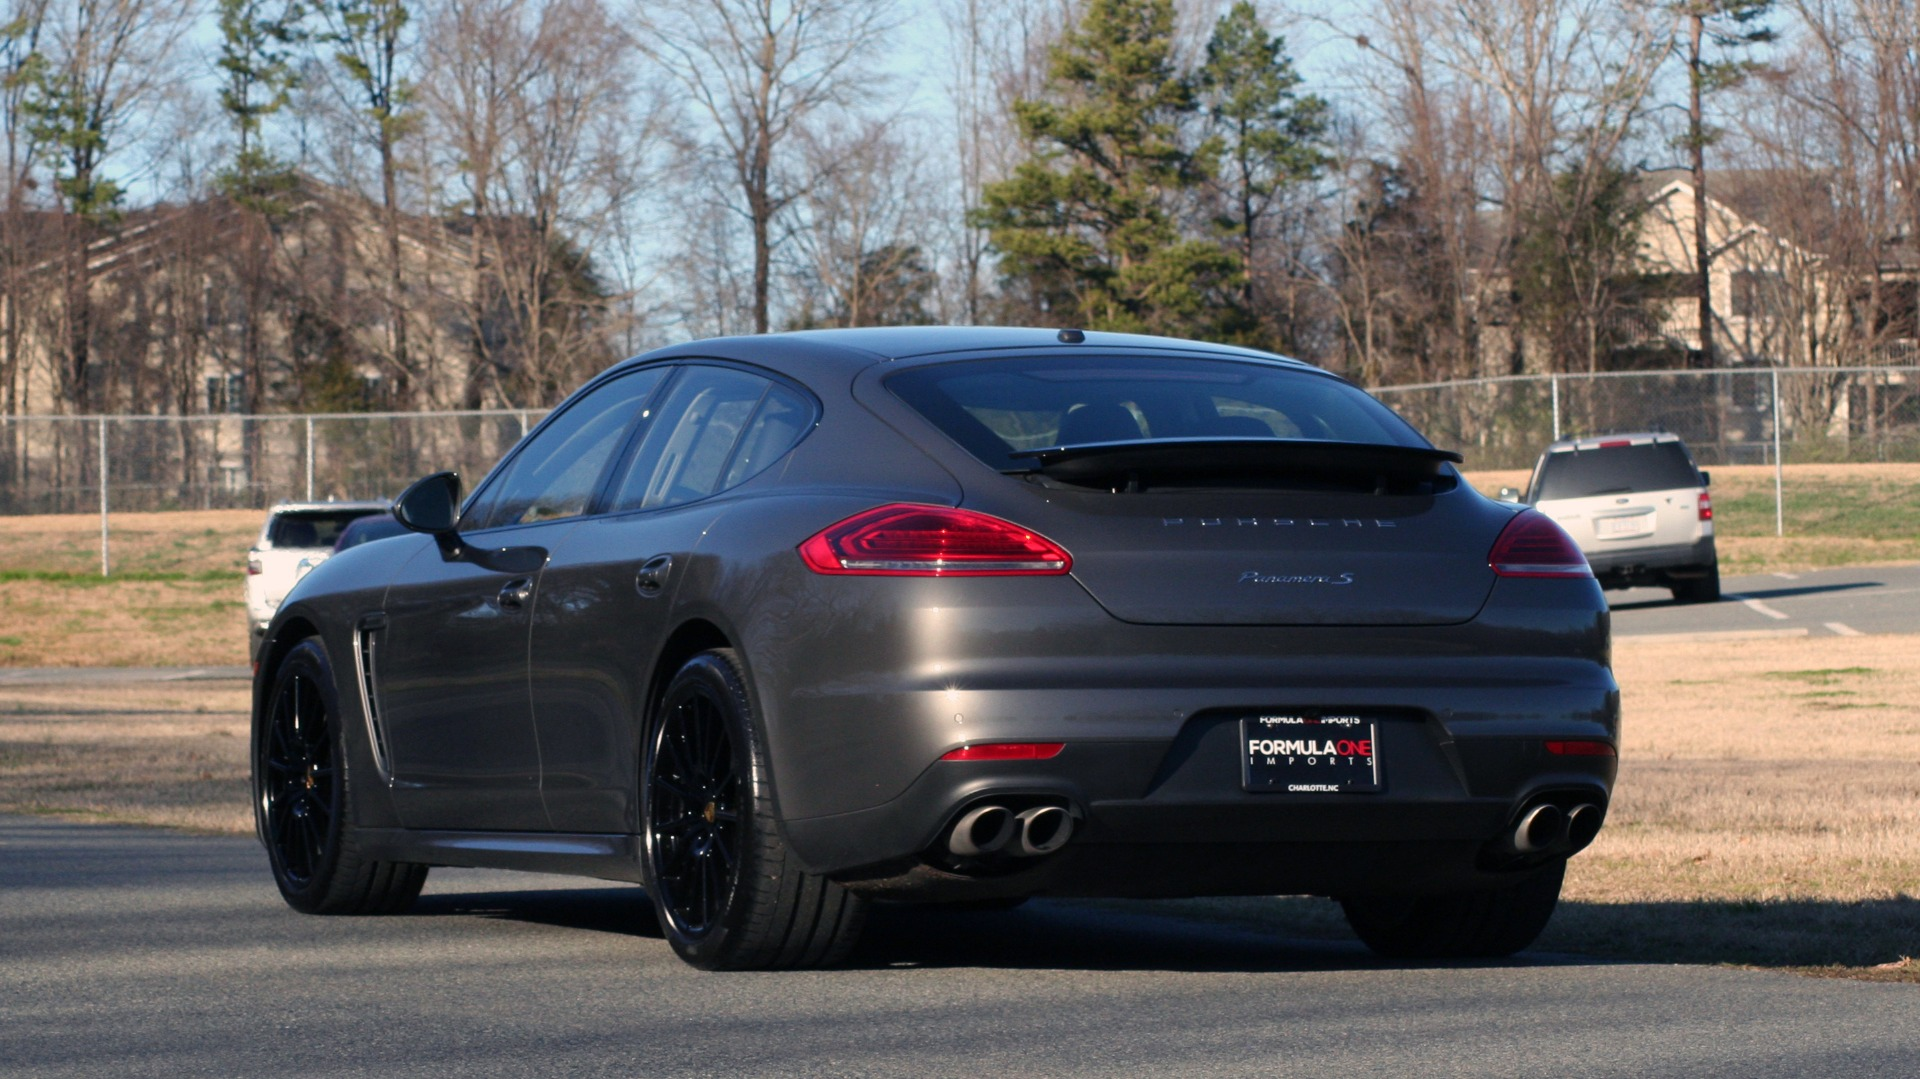 Used 2016 Porsche PANAMERA S / TURBO V6 / PDK / NAV / BOSE / SNRF / LDW / REARVIEW for sale Sold at Formula Imports in Charlotte NC 28227 8